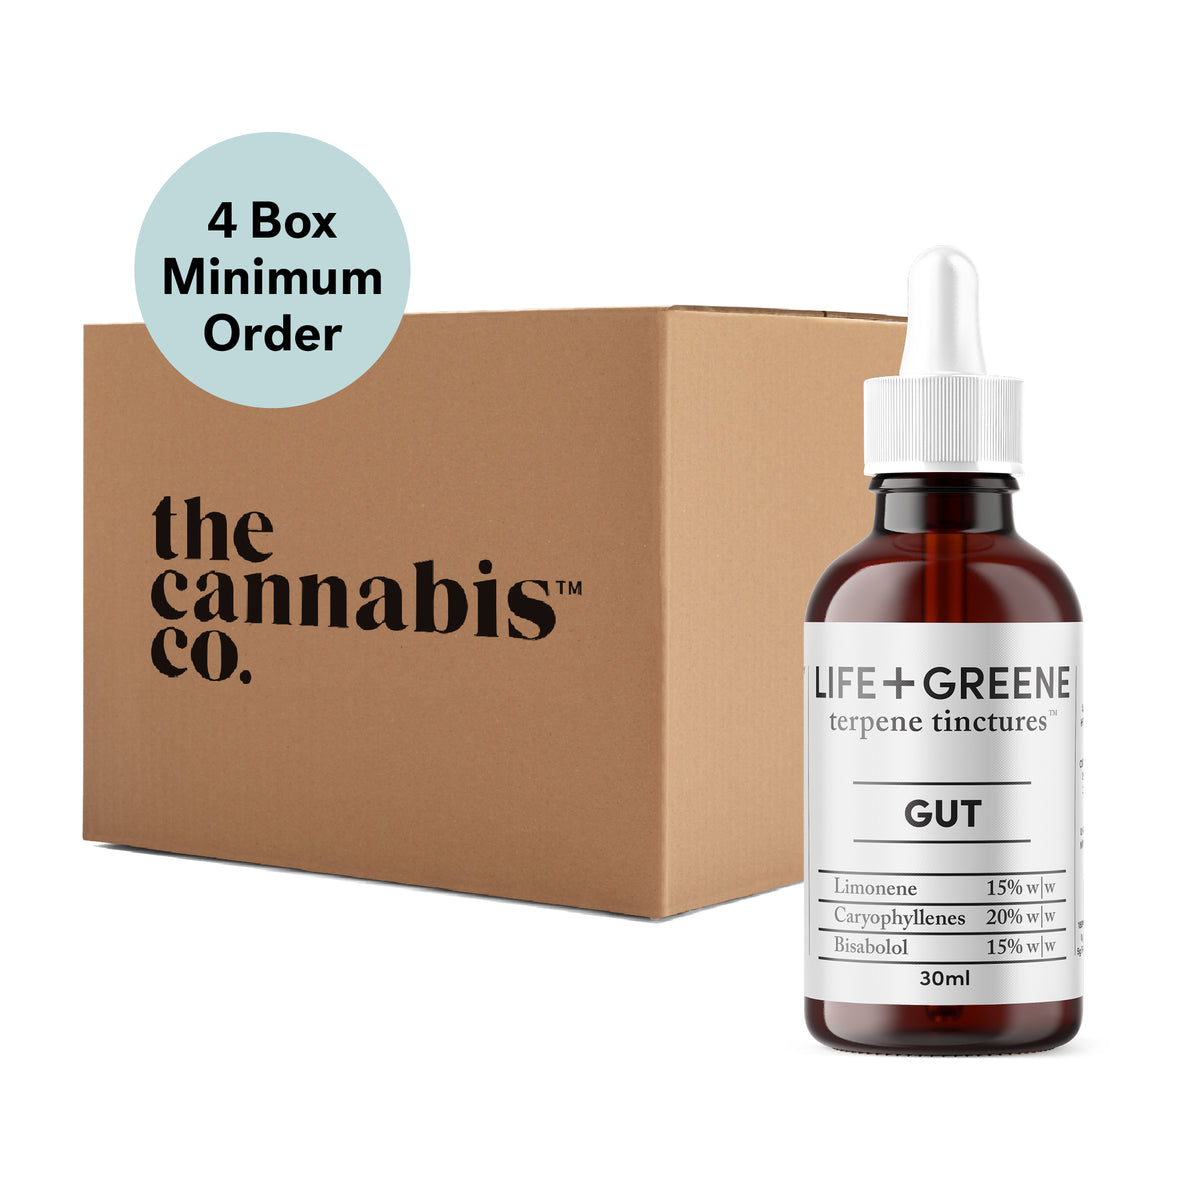 Gut Terpene Tincture 30ml - Box of 6 (MINIMUM ORDER SIZE: 4 BOXES)